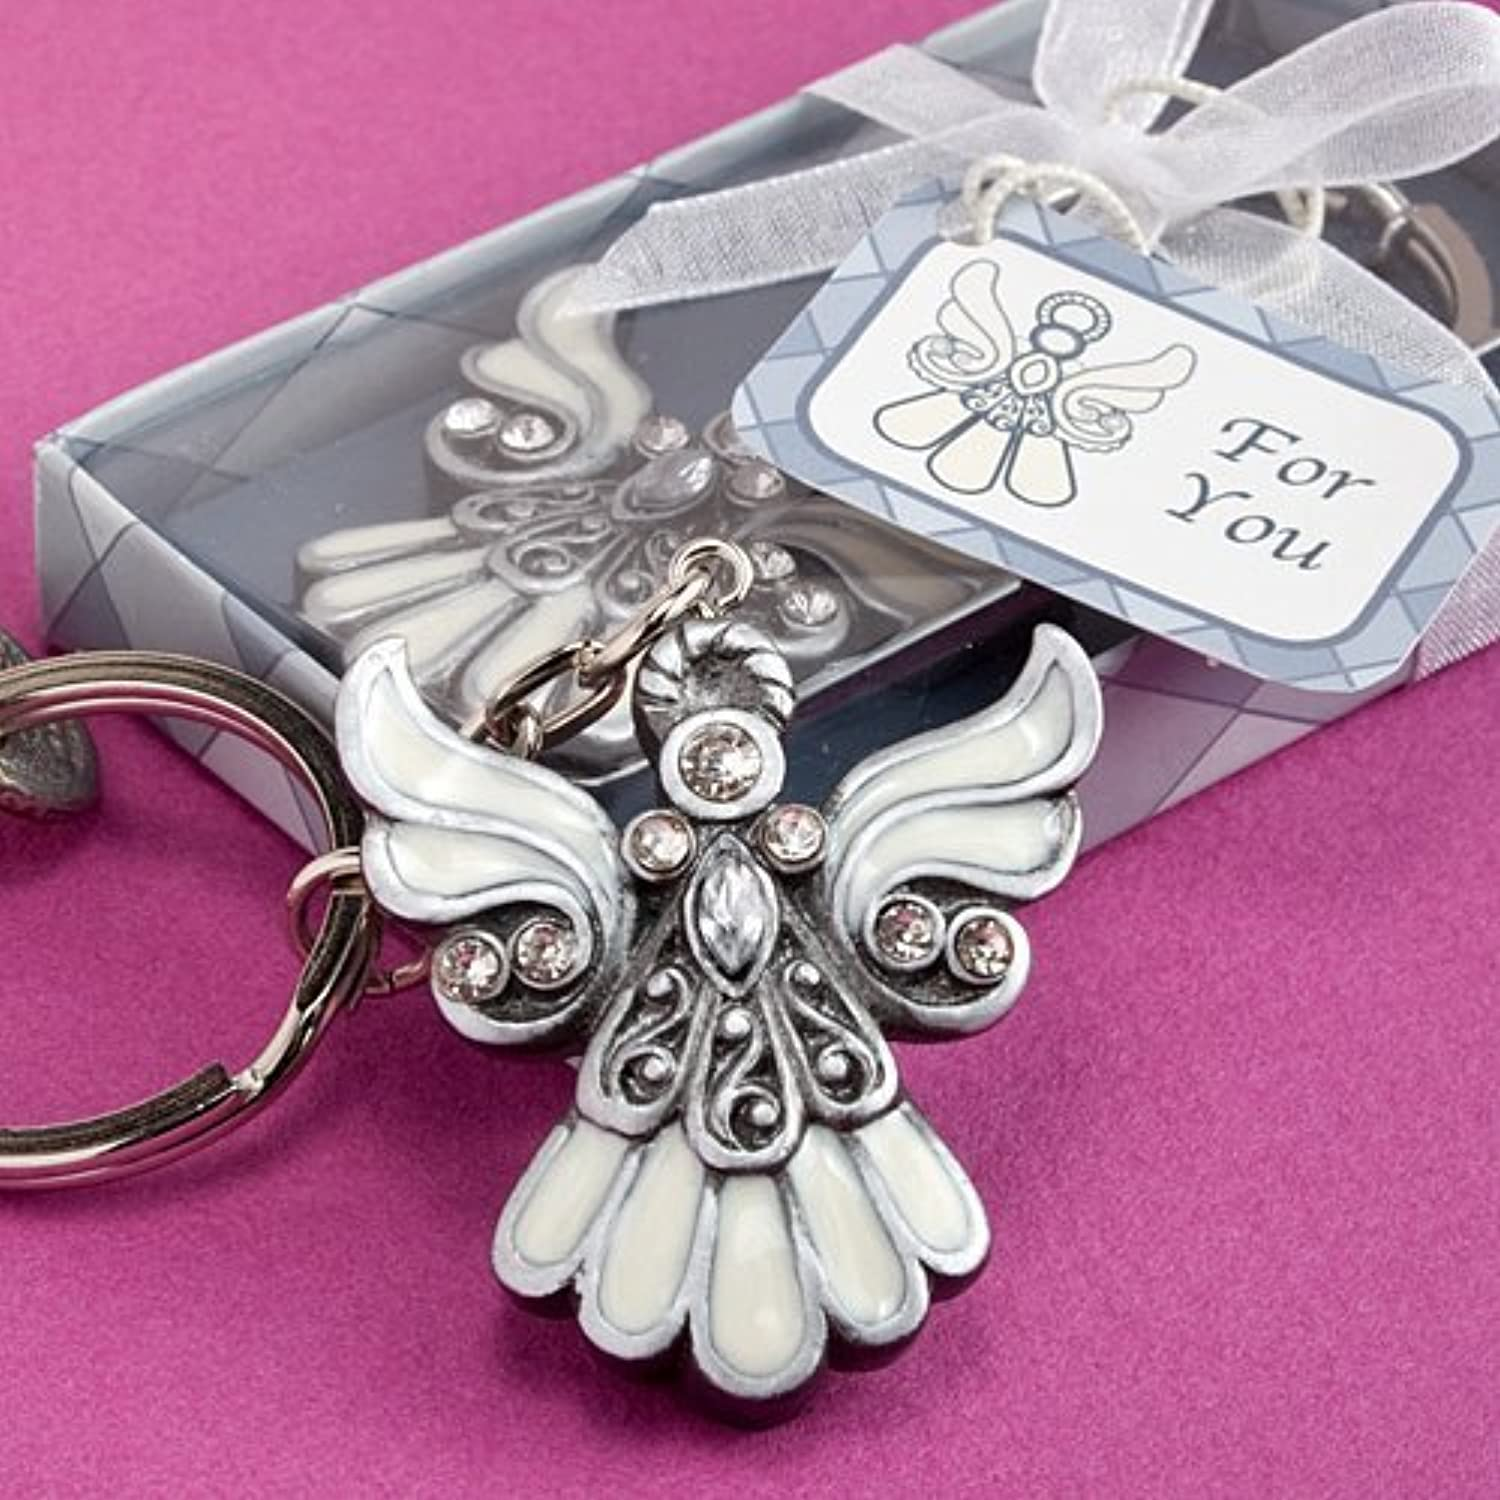 Useful Communion Favors  Angel Design Keychain Favors, 25 by Fashioncraft